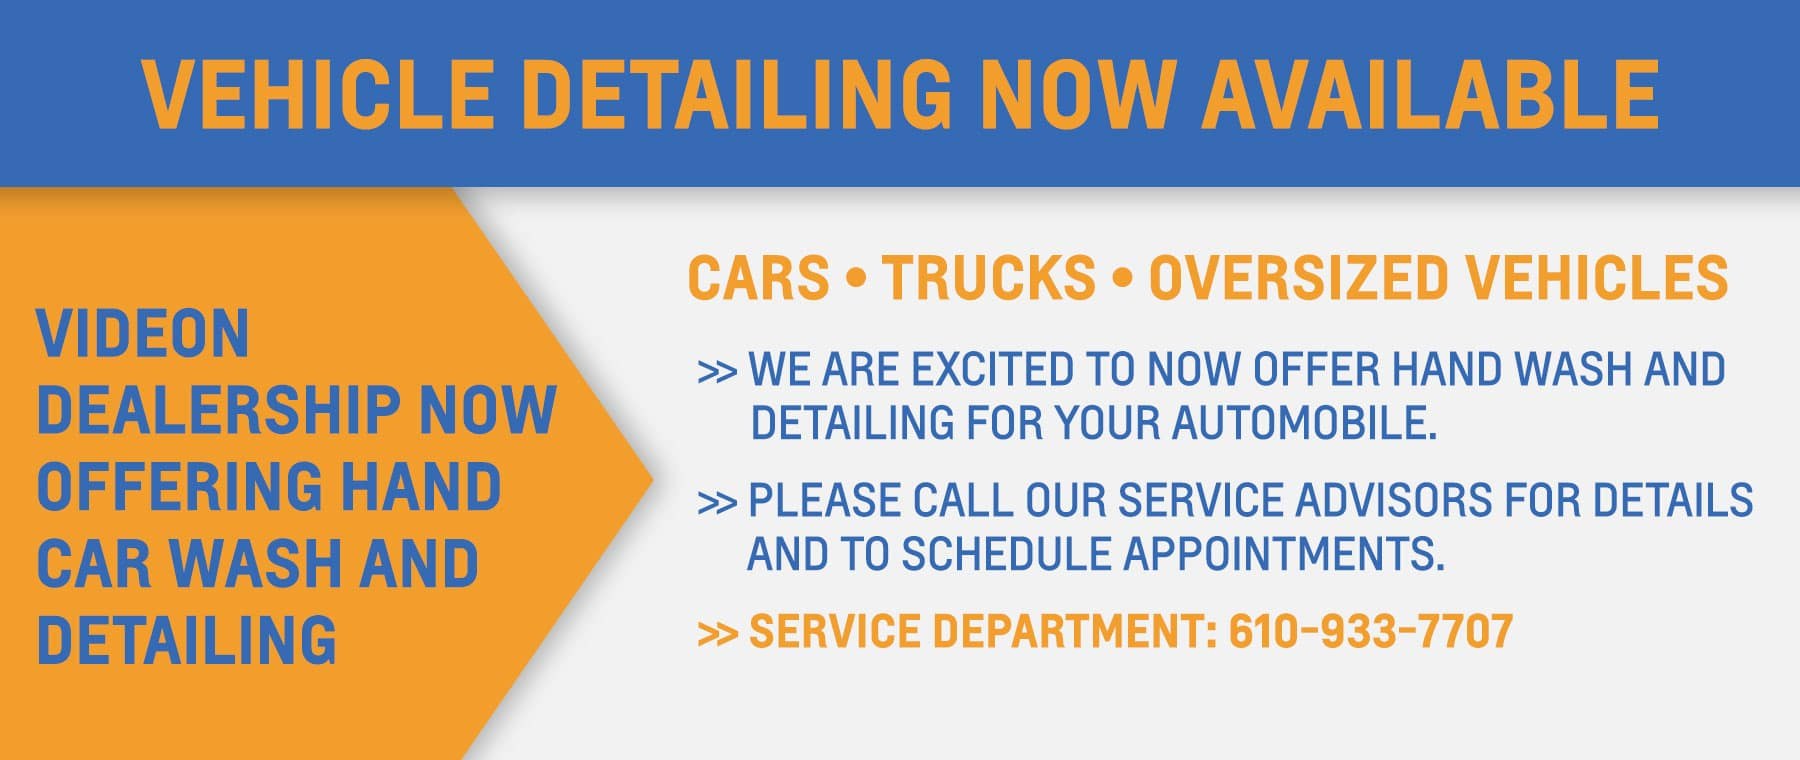 VEHICLE DETAILING NOW AVAILABLE VIDEON DEALERSHIP NOW OFFERING HAND CAR WASH AND DETAILING CARS/TRUCKS/OVERSIZED VEHICLES WE ARE EXCITED TO NOW OFFER HAND WASH AND DETAILING FOR YOUR AUTOMOBILE. PLEASE CALL OUR SERVICE ADVISORS FOR DETAILS AND TO SCHEDULE APPOINTMENTS. SERVICE DEPARTMENT 610-933-7701